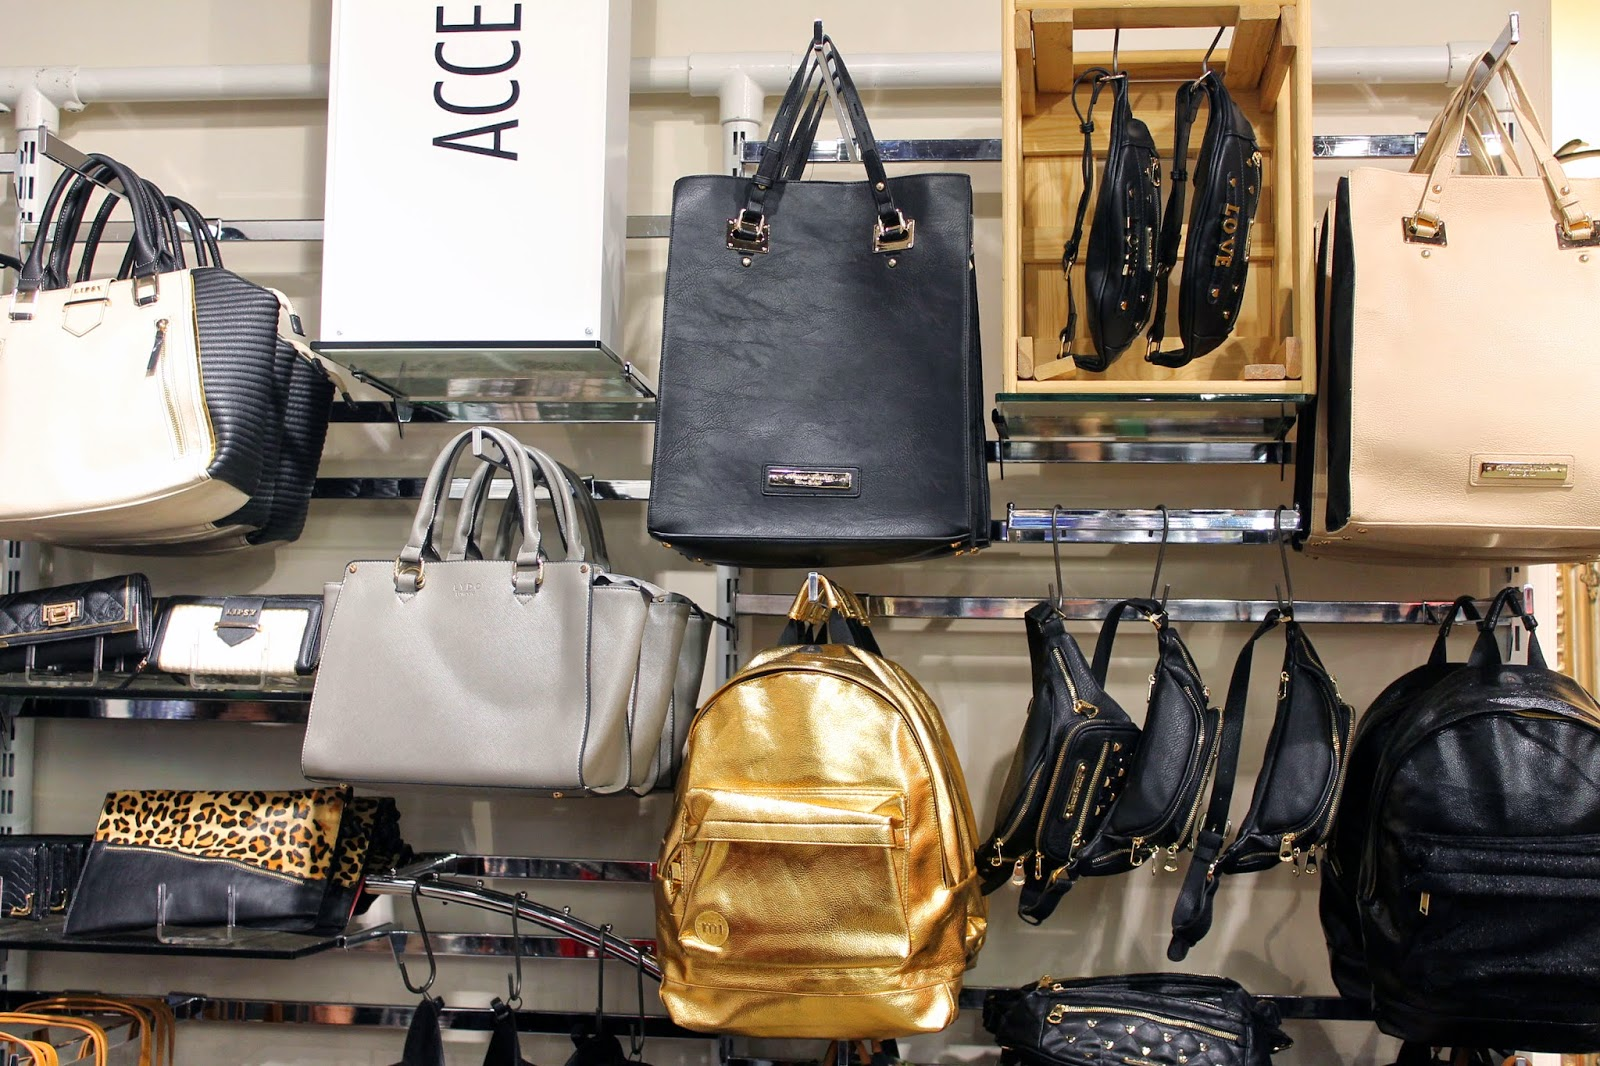 BANK fashion warrington store accessories visual merchandising black and gold